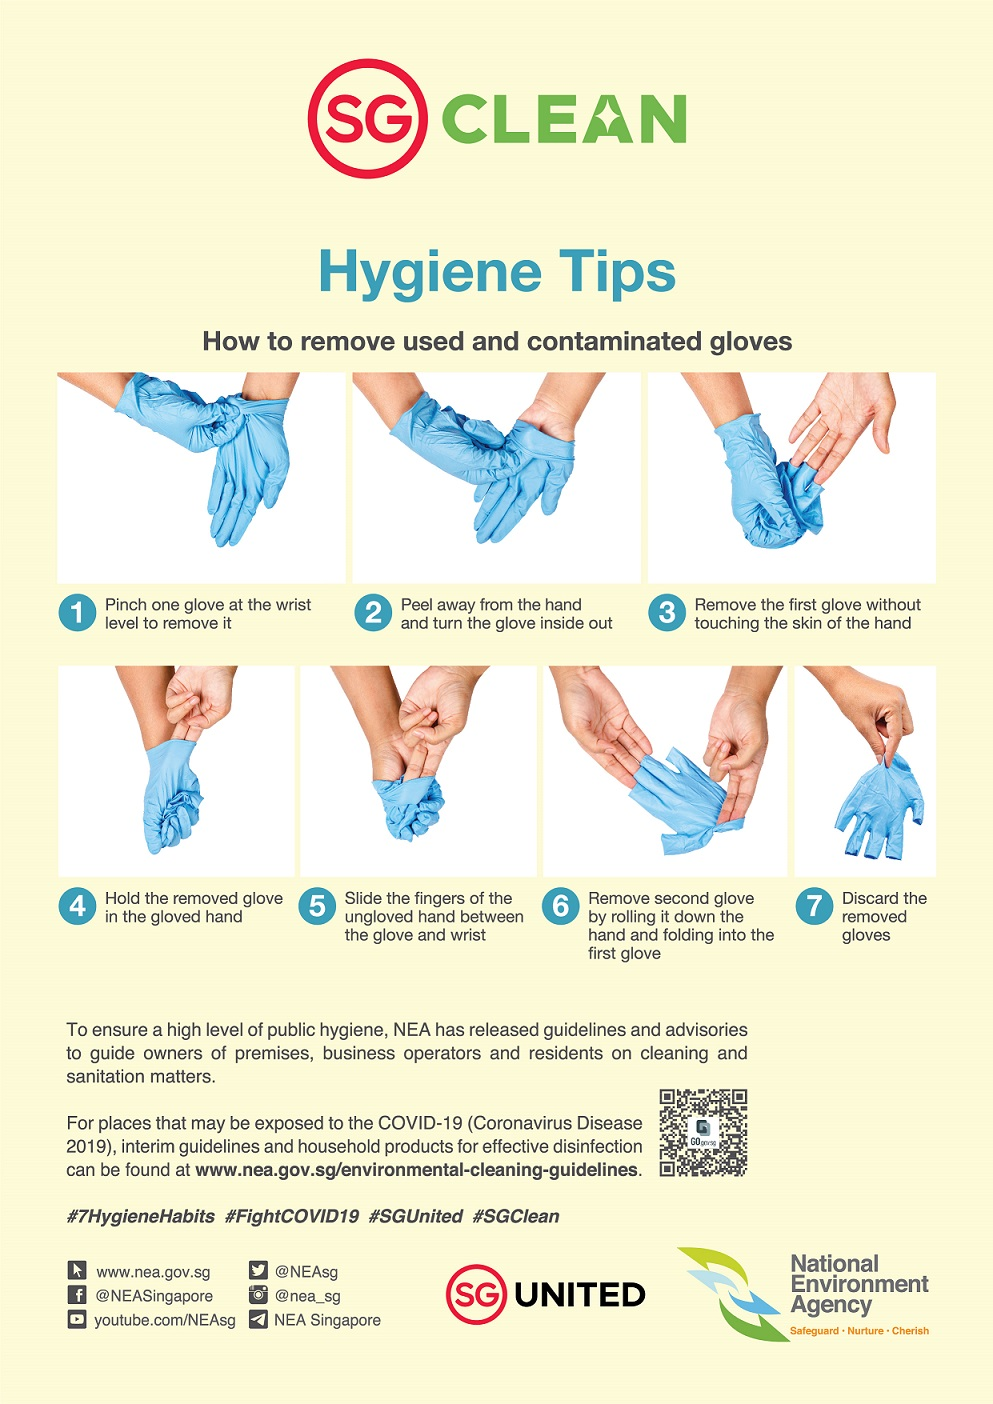 Hygiene Tips for Cleaners